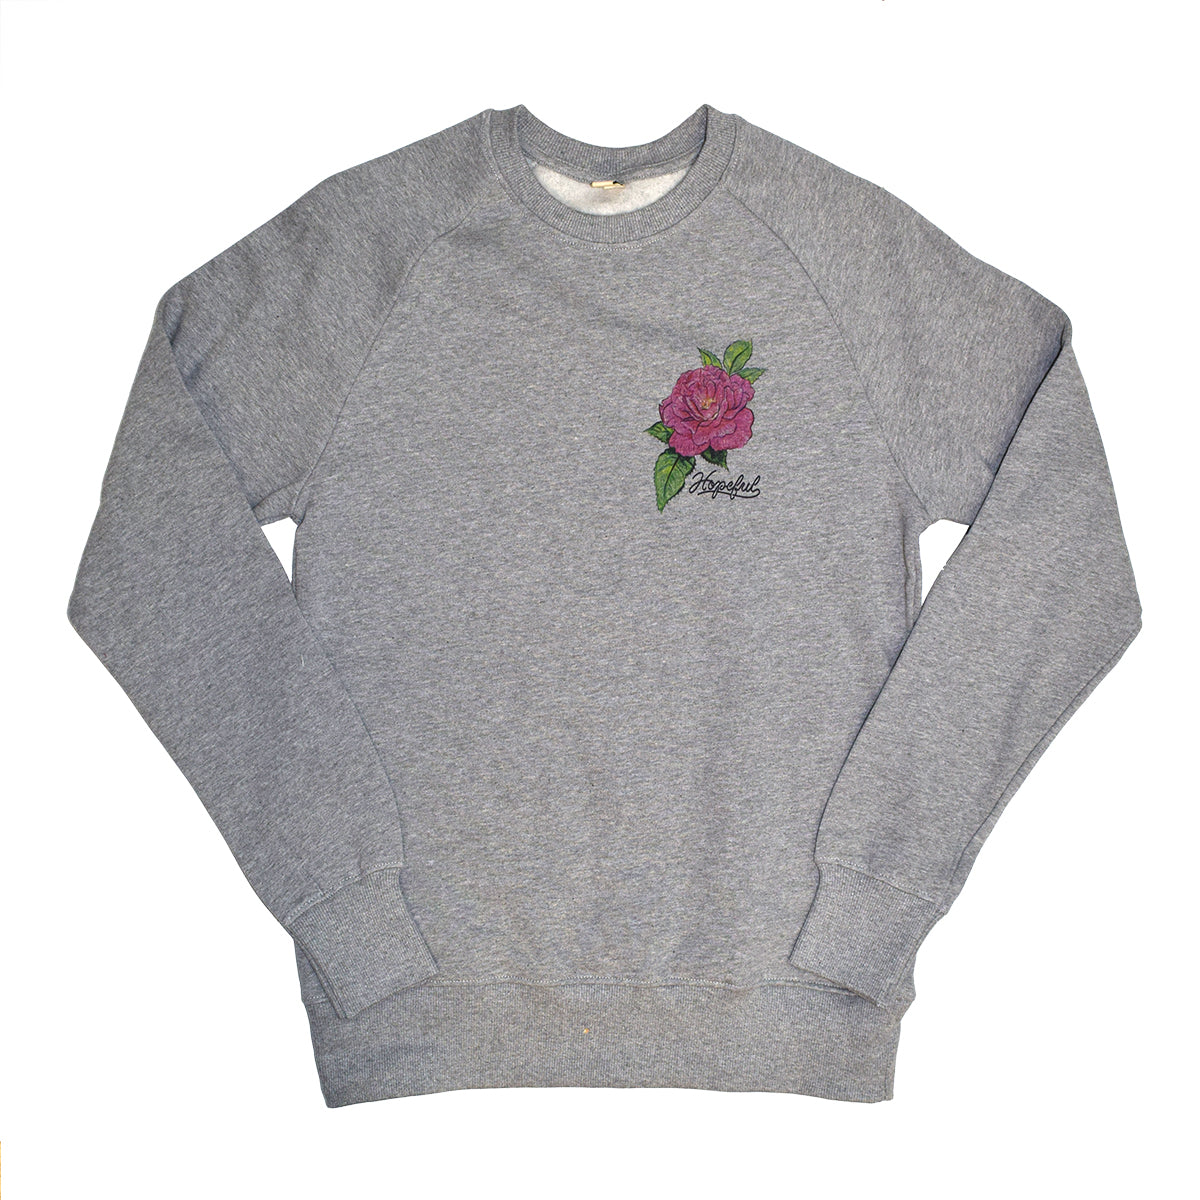 Naomi's Rose Organic Sweatshirt // Grey